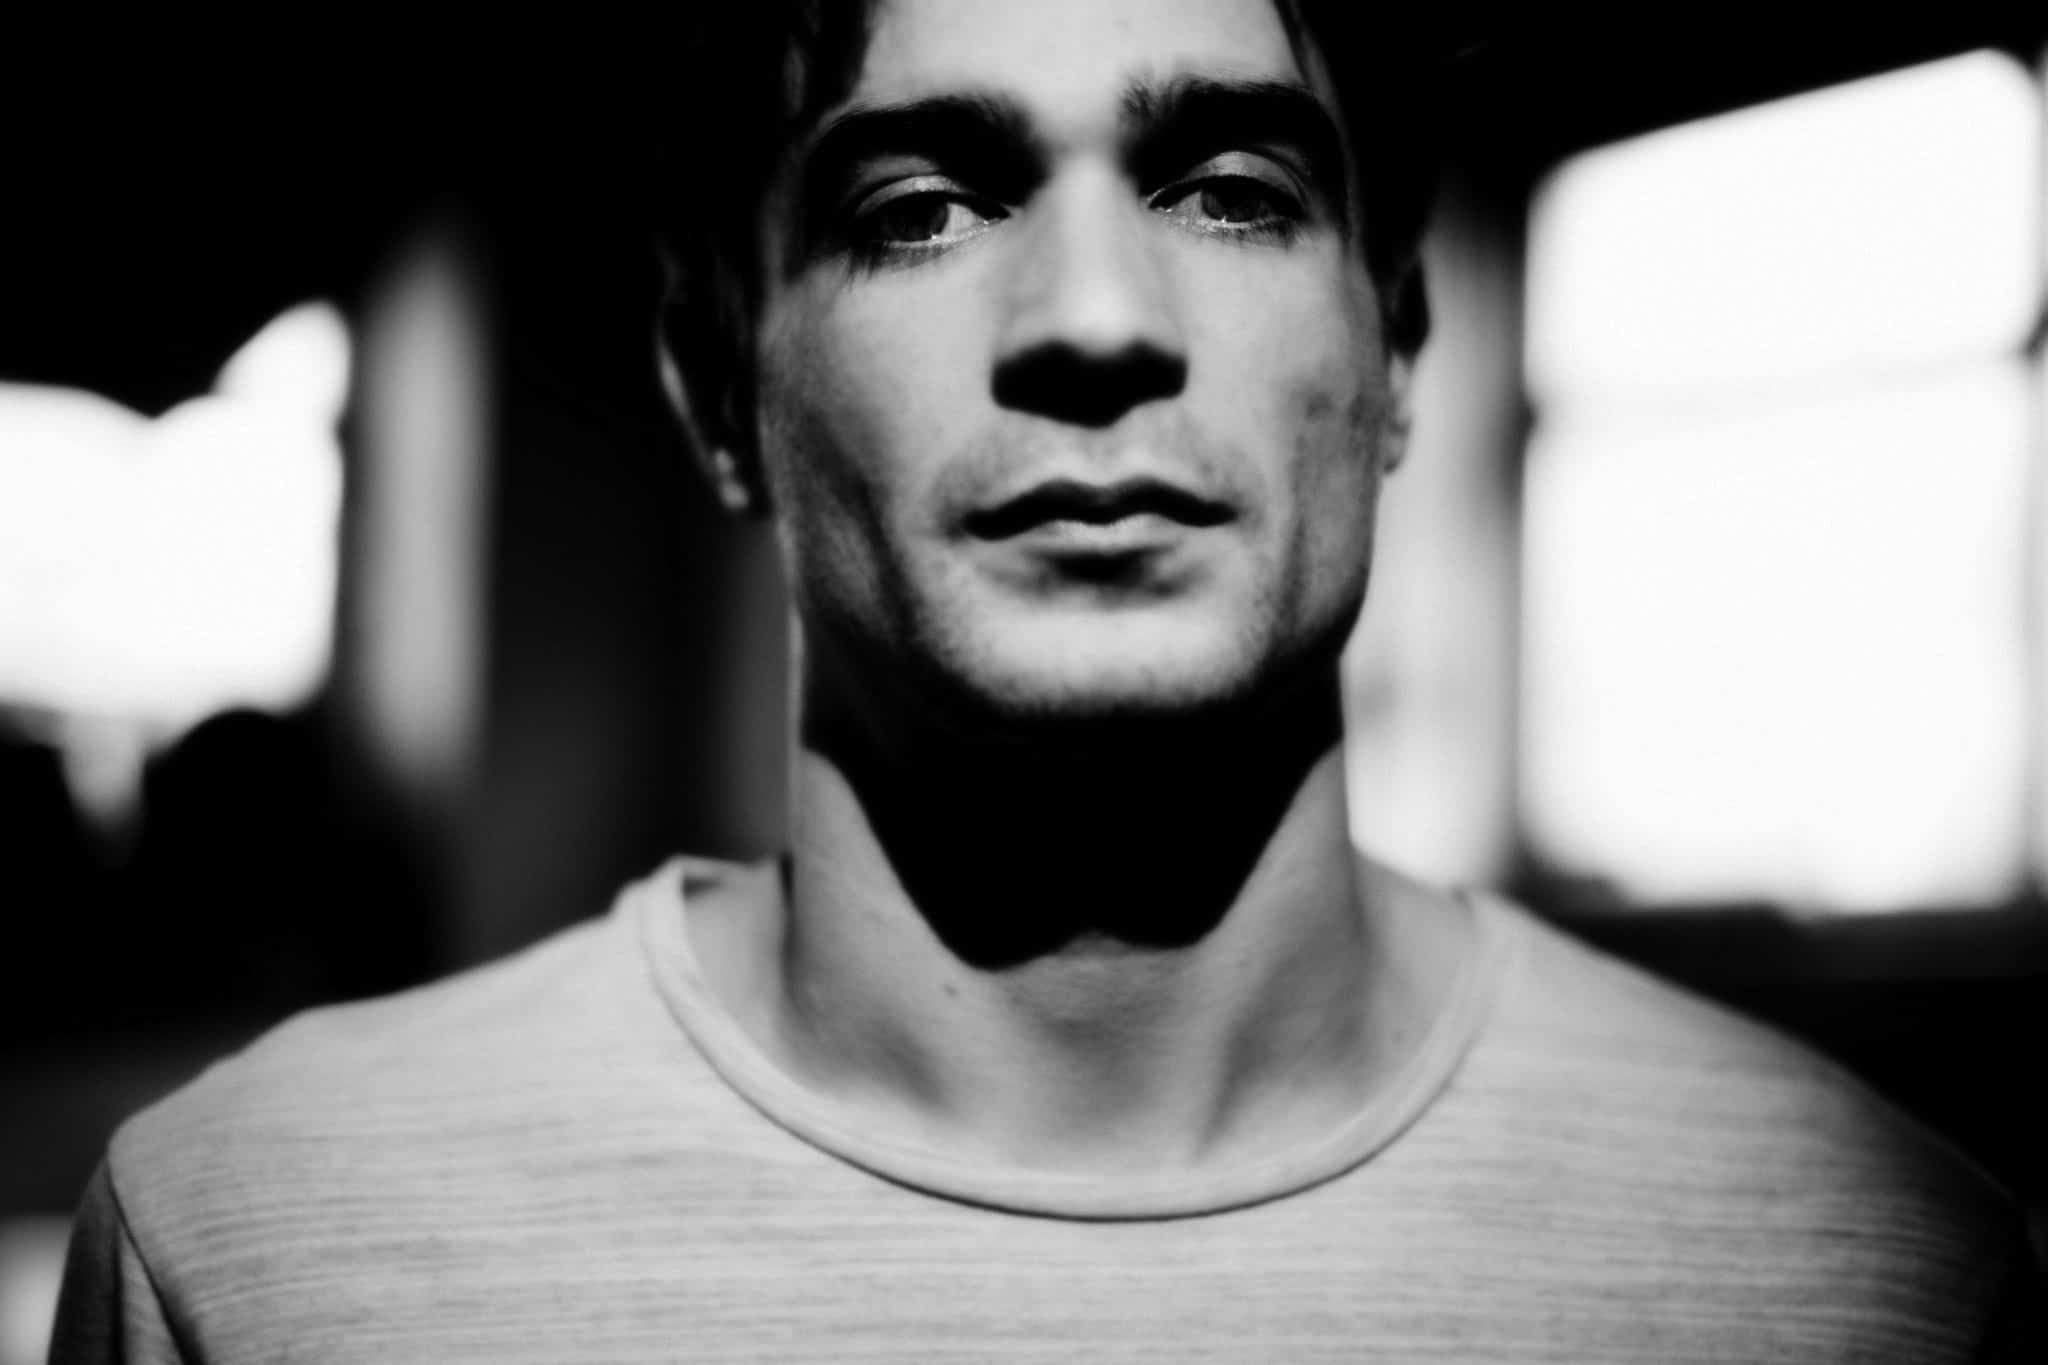 Up Close: Jon Hopkins